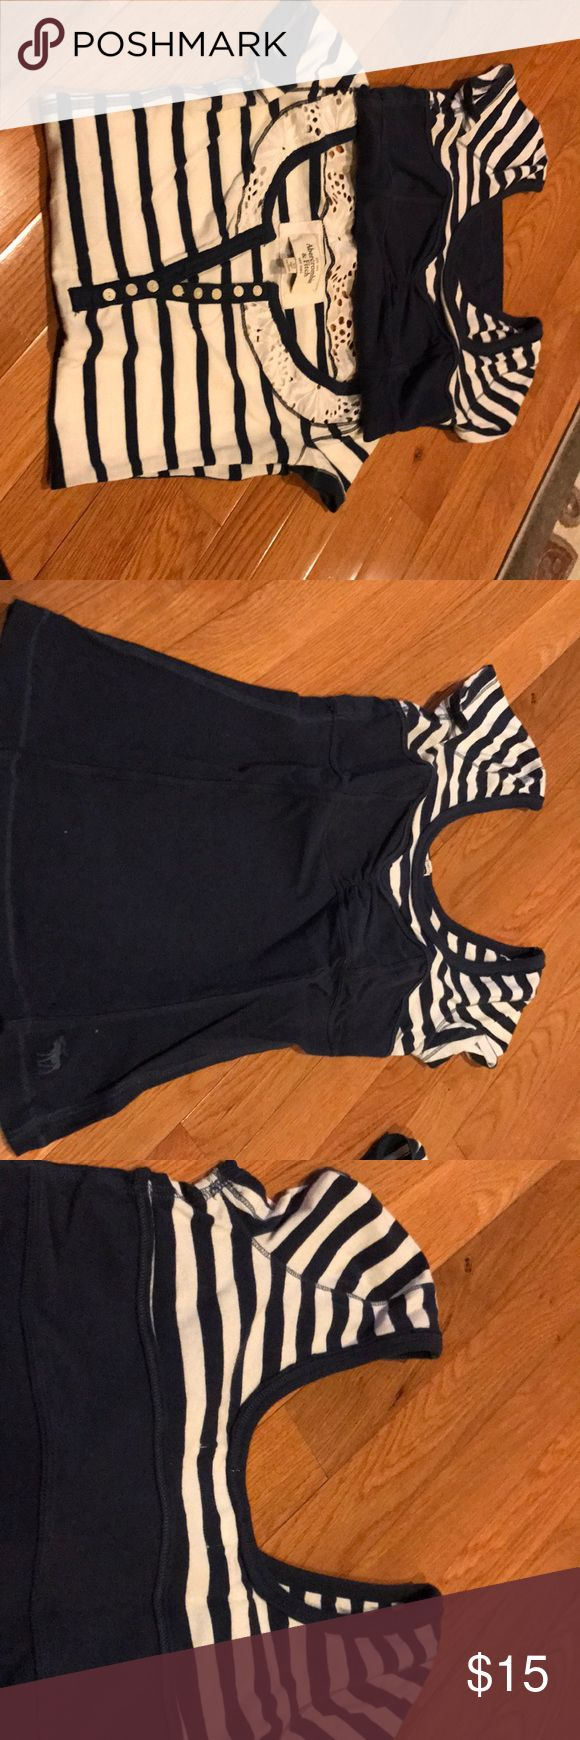 Selling bundle of two Abercrombie and fitch shirts Two navy and white Abercrombie and fitch tshirt material shirts. One is size xs and the other small both fit like a small Abercrombie & Fitch Tops Tees - Short Sleeve